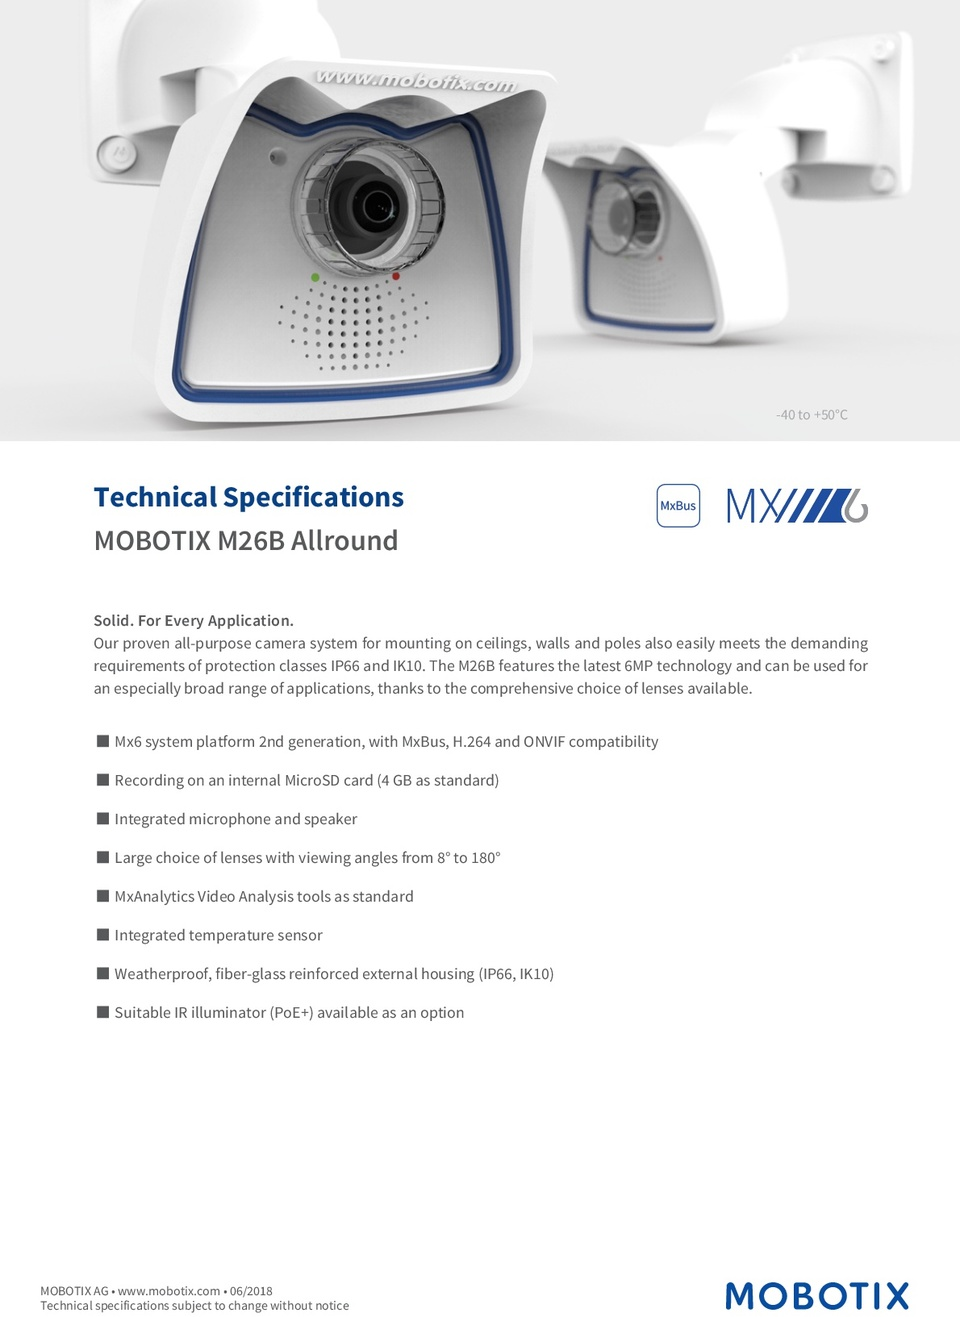 Mobotix M26B Camera 6MP L43 7.9mm Day Lens 0